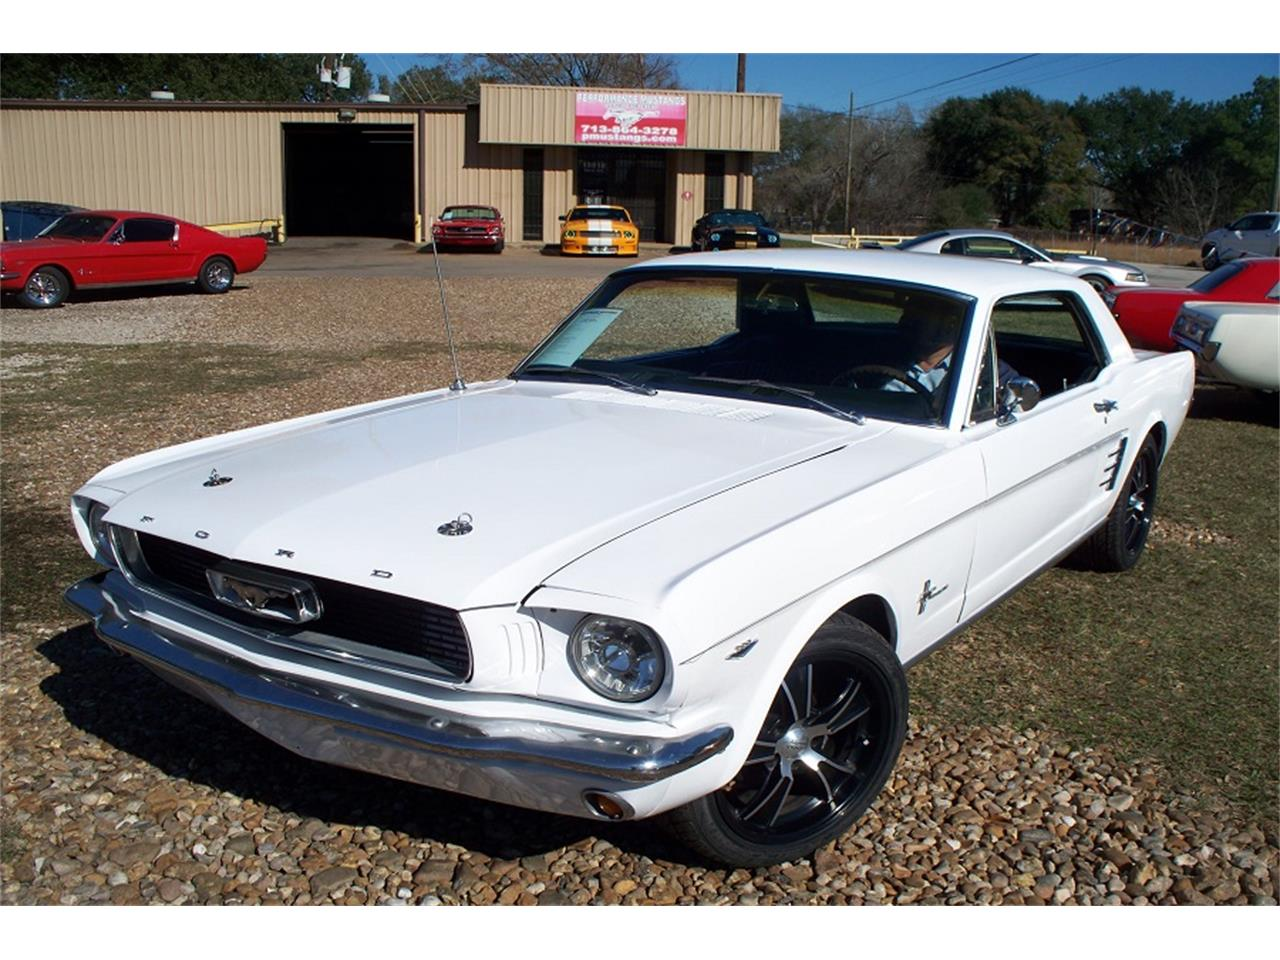 1966 Mustang Vin Location Wwwtopsimagescom